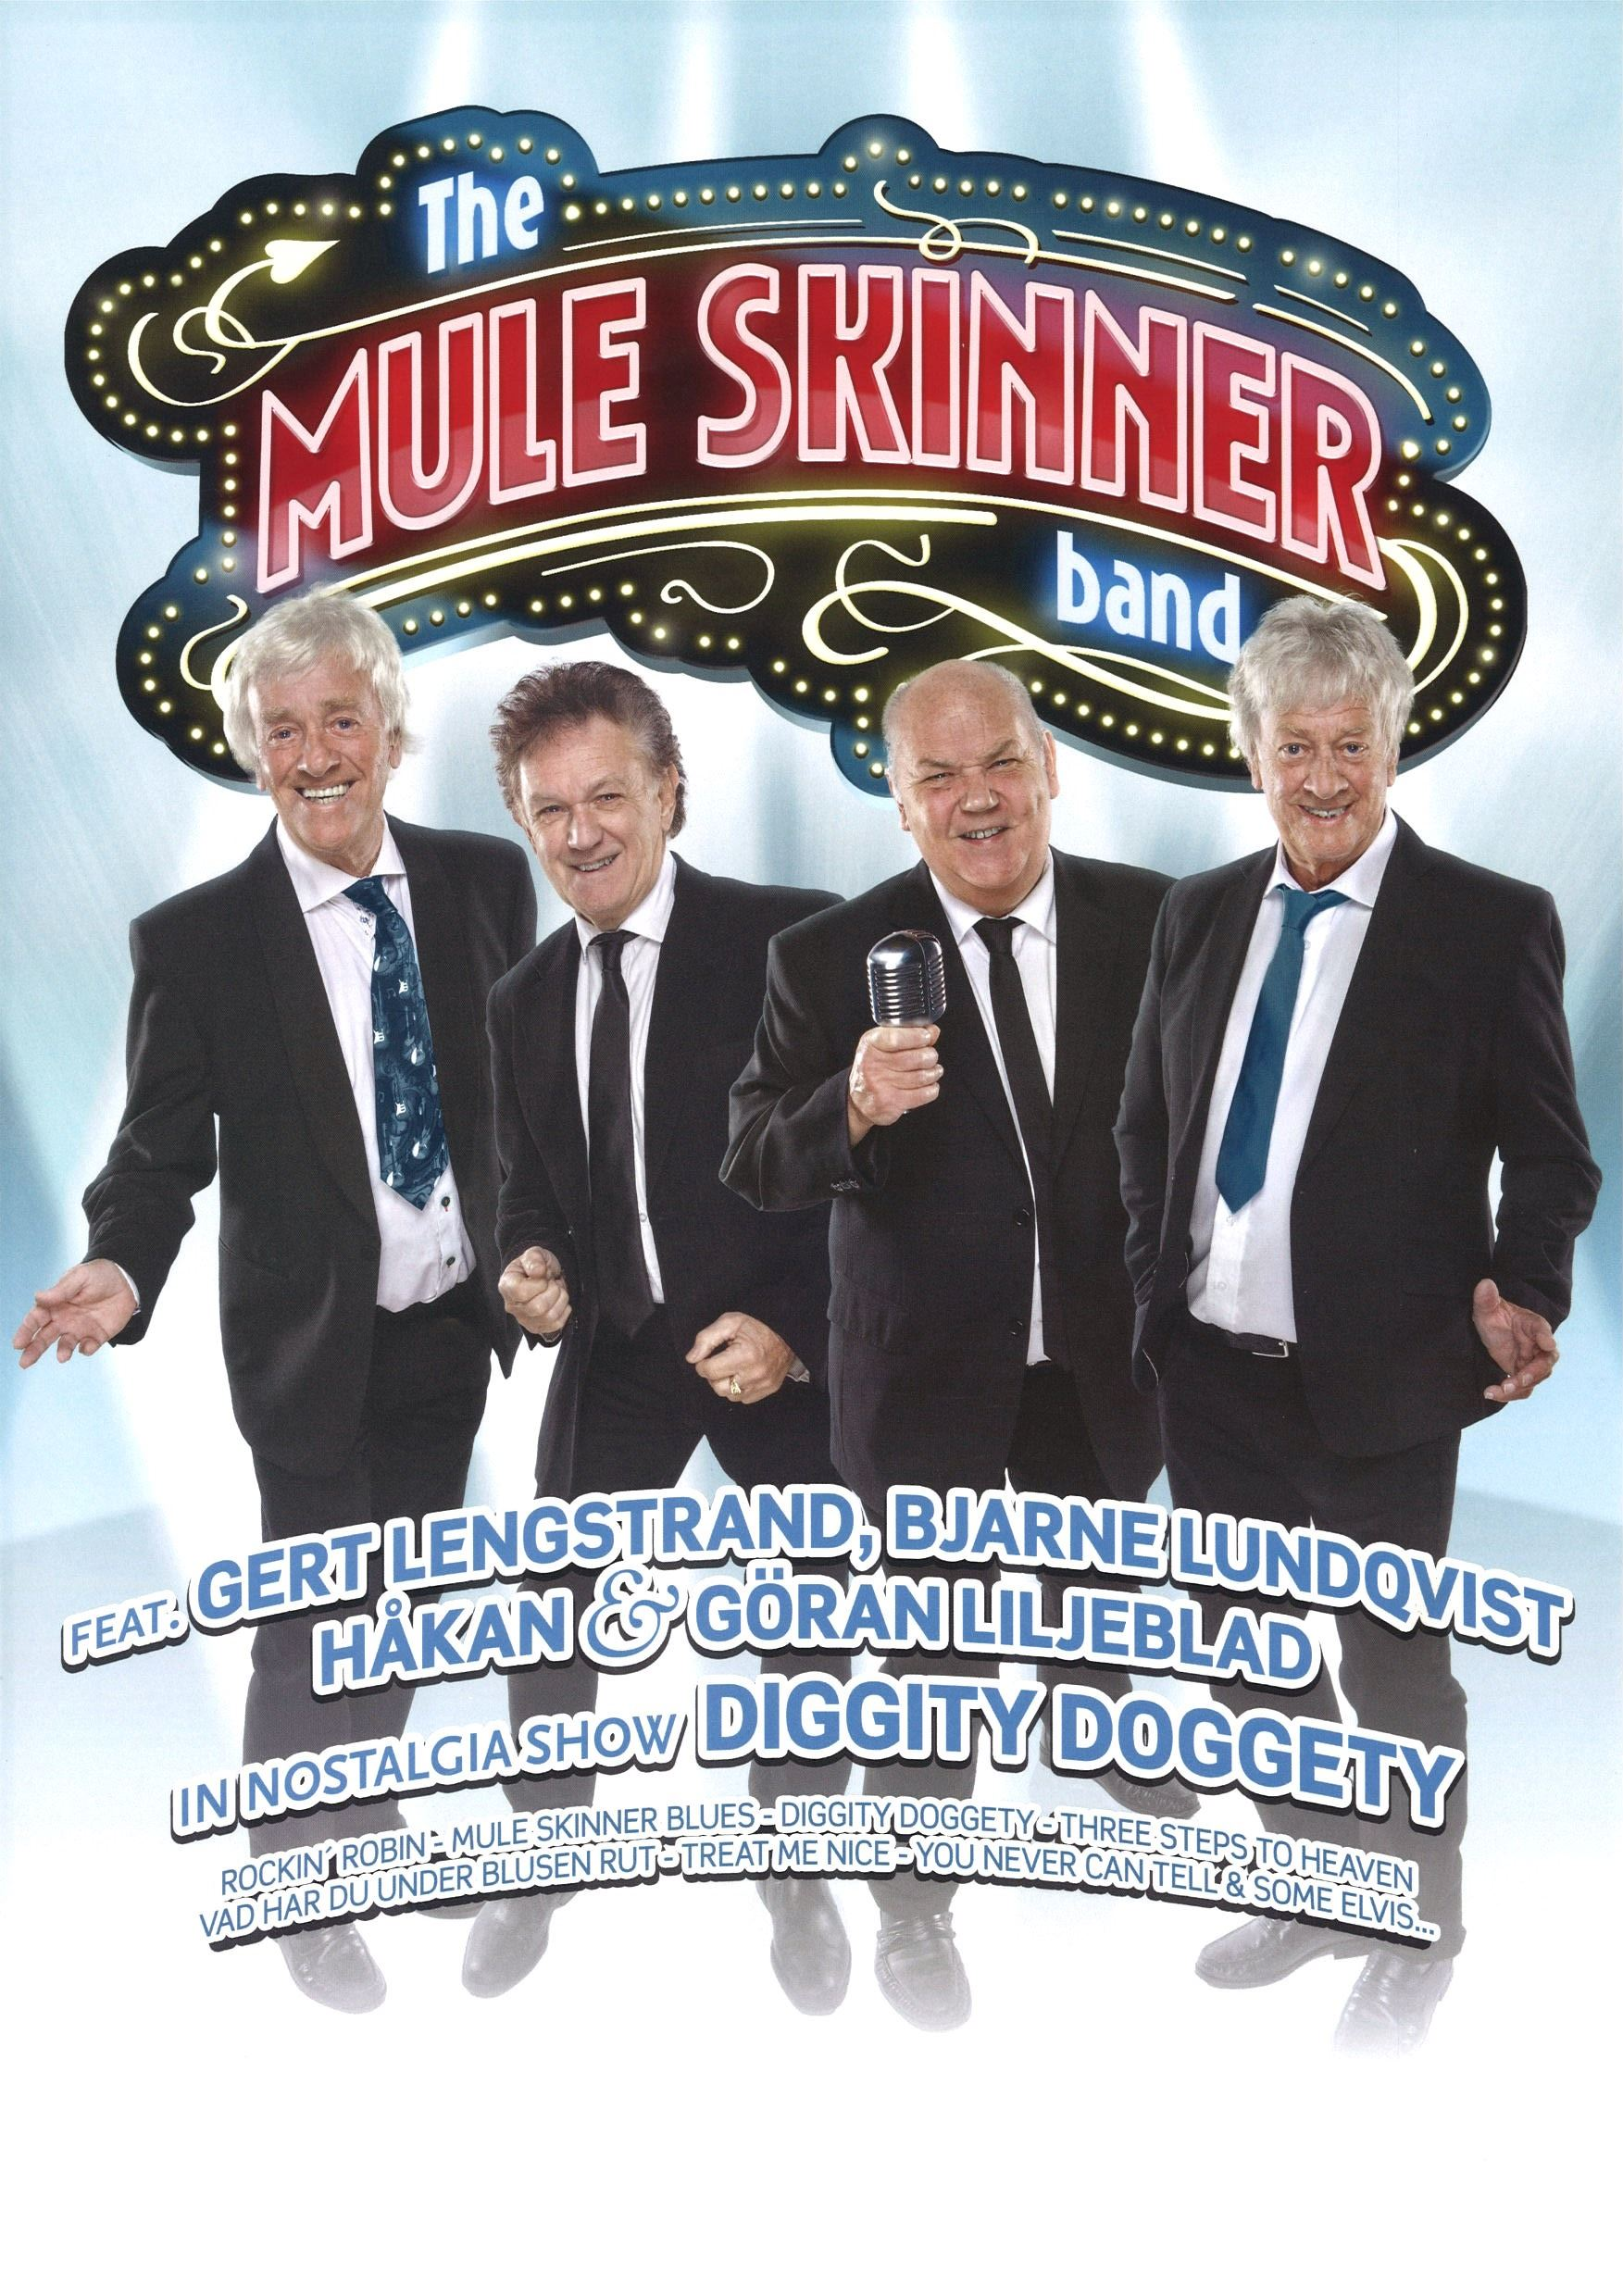 Konsert: The Mule Skinner band